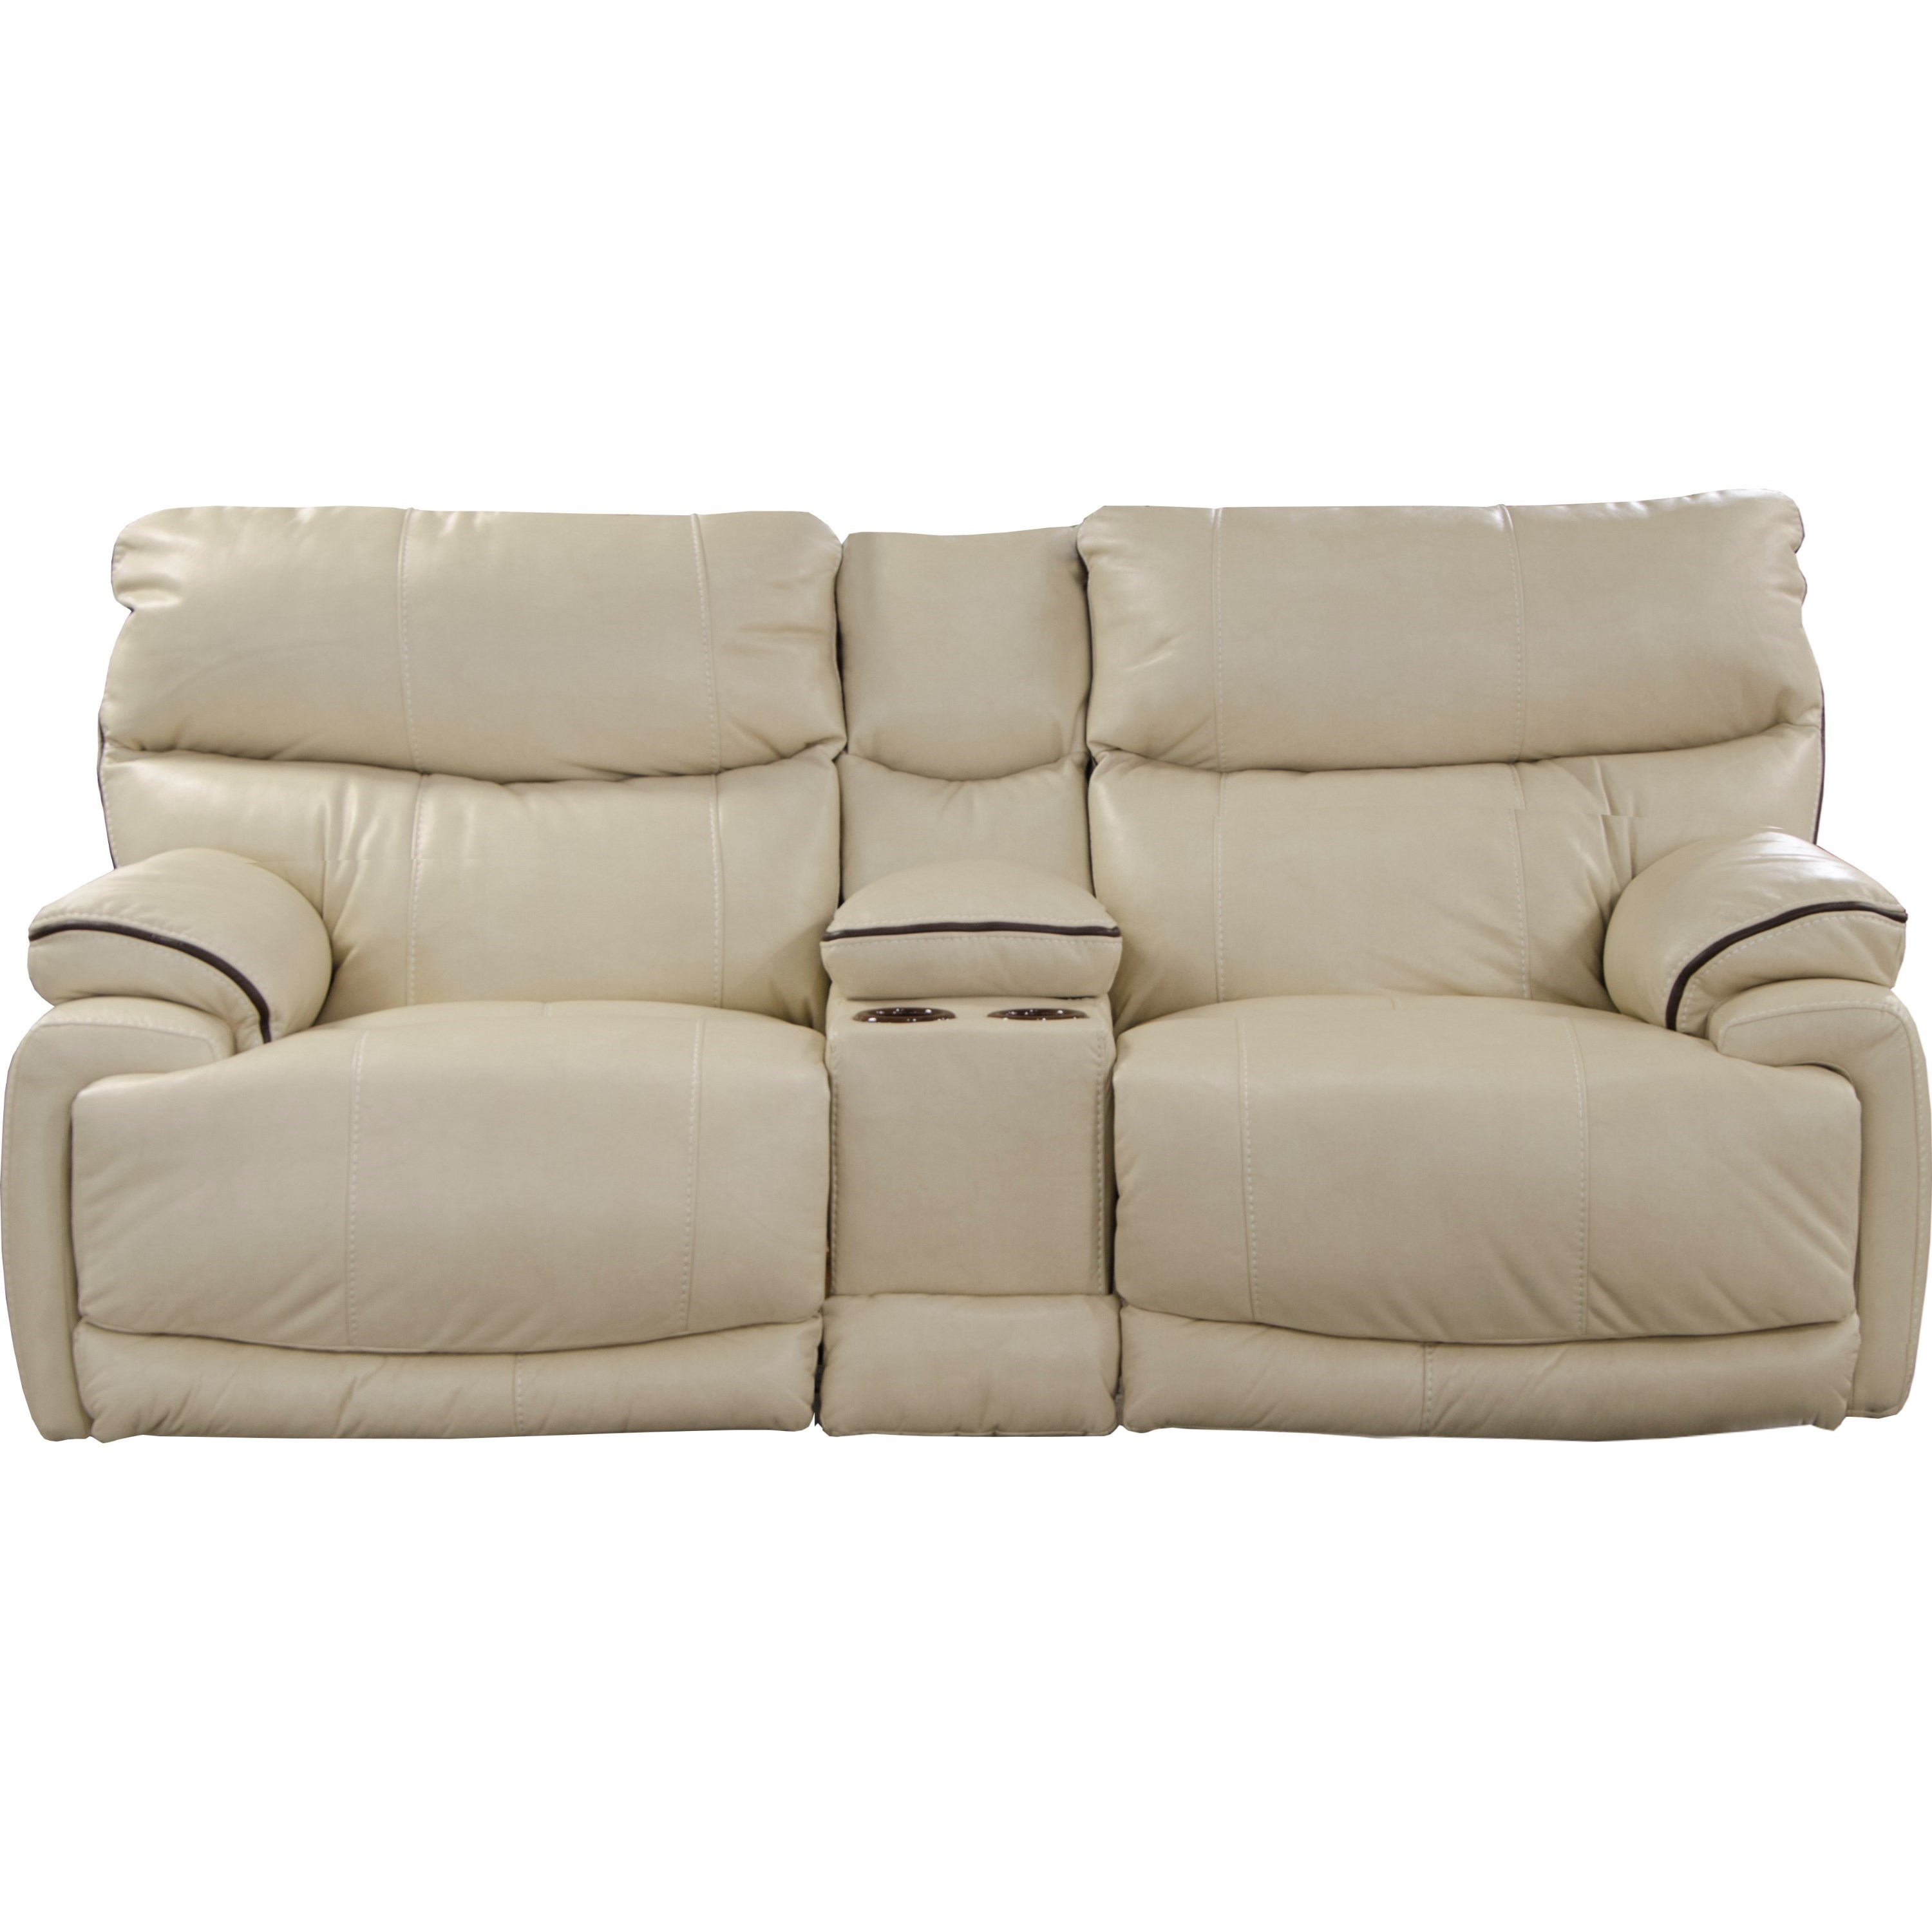 Catnapper Larkin Lay-Flat Reclining Console Loveseat - Item Number: 13999-1161-16-1261-16